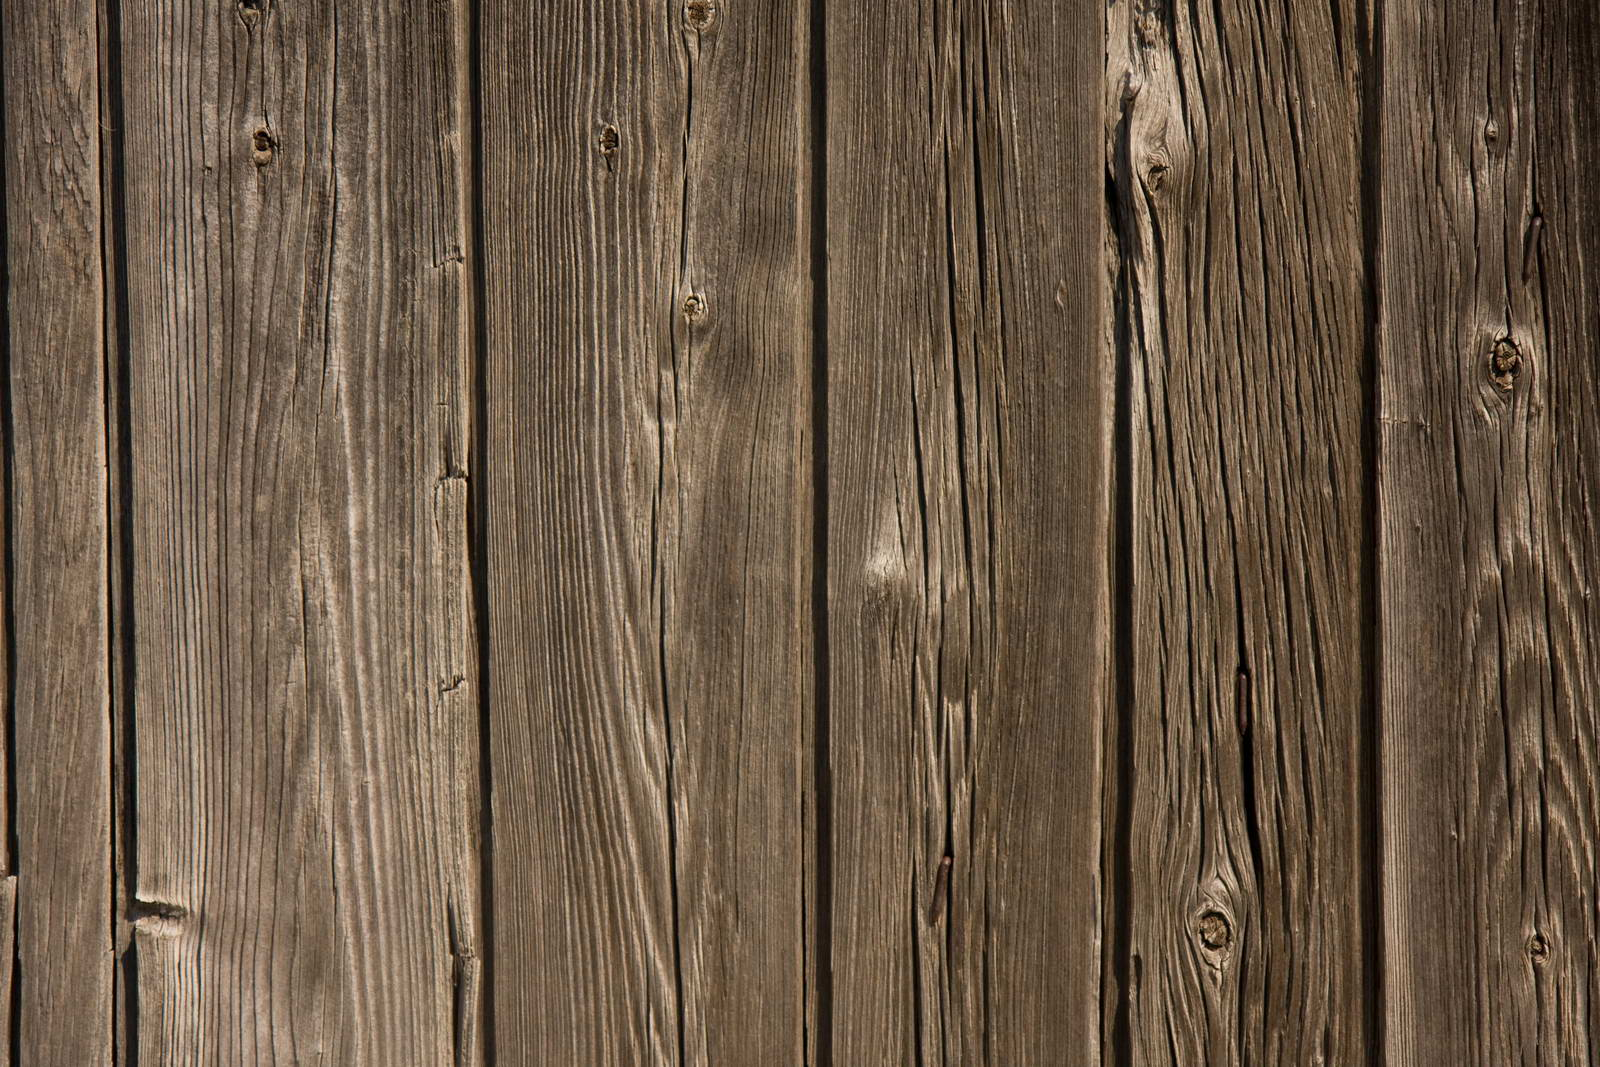 texture wood, old planking, image